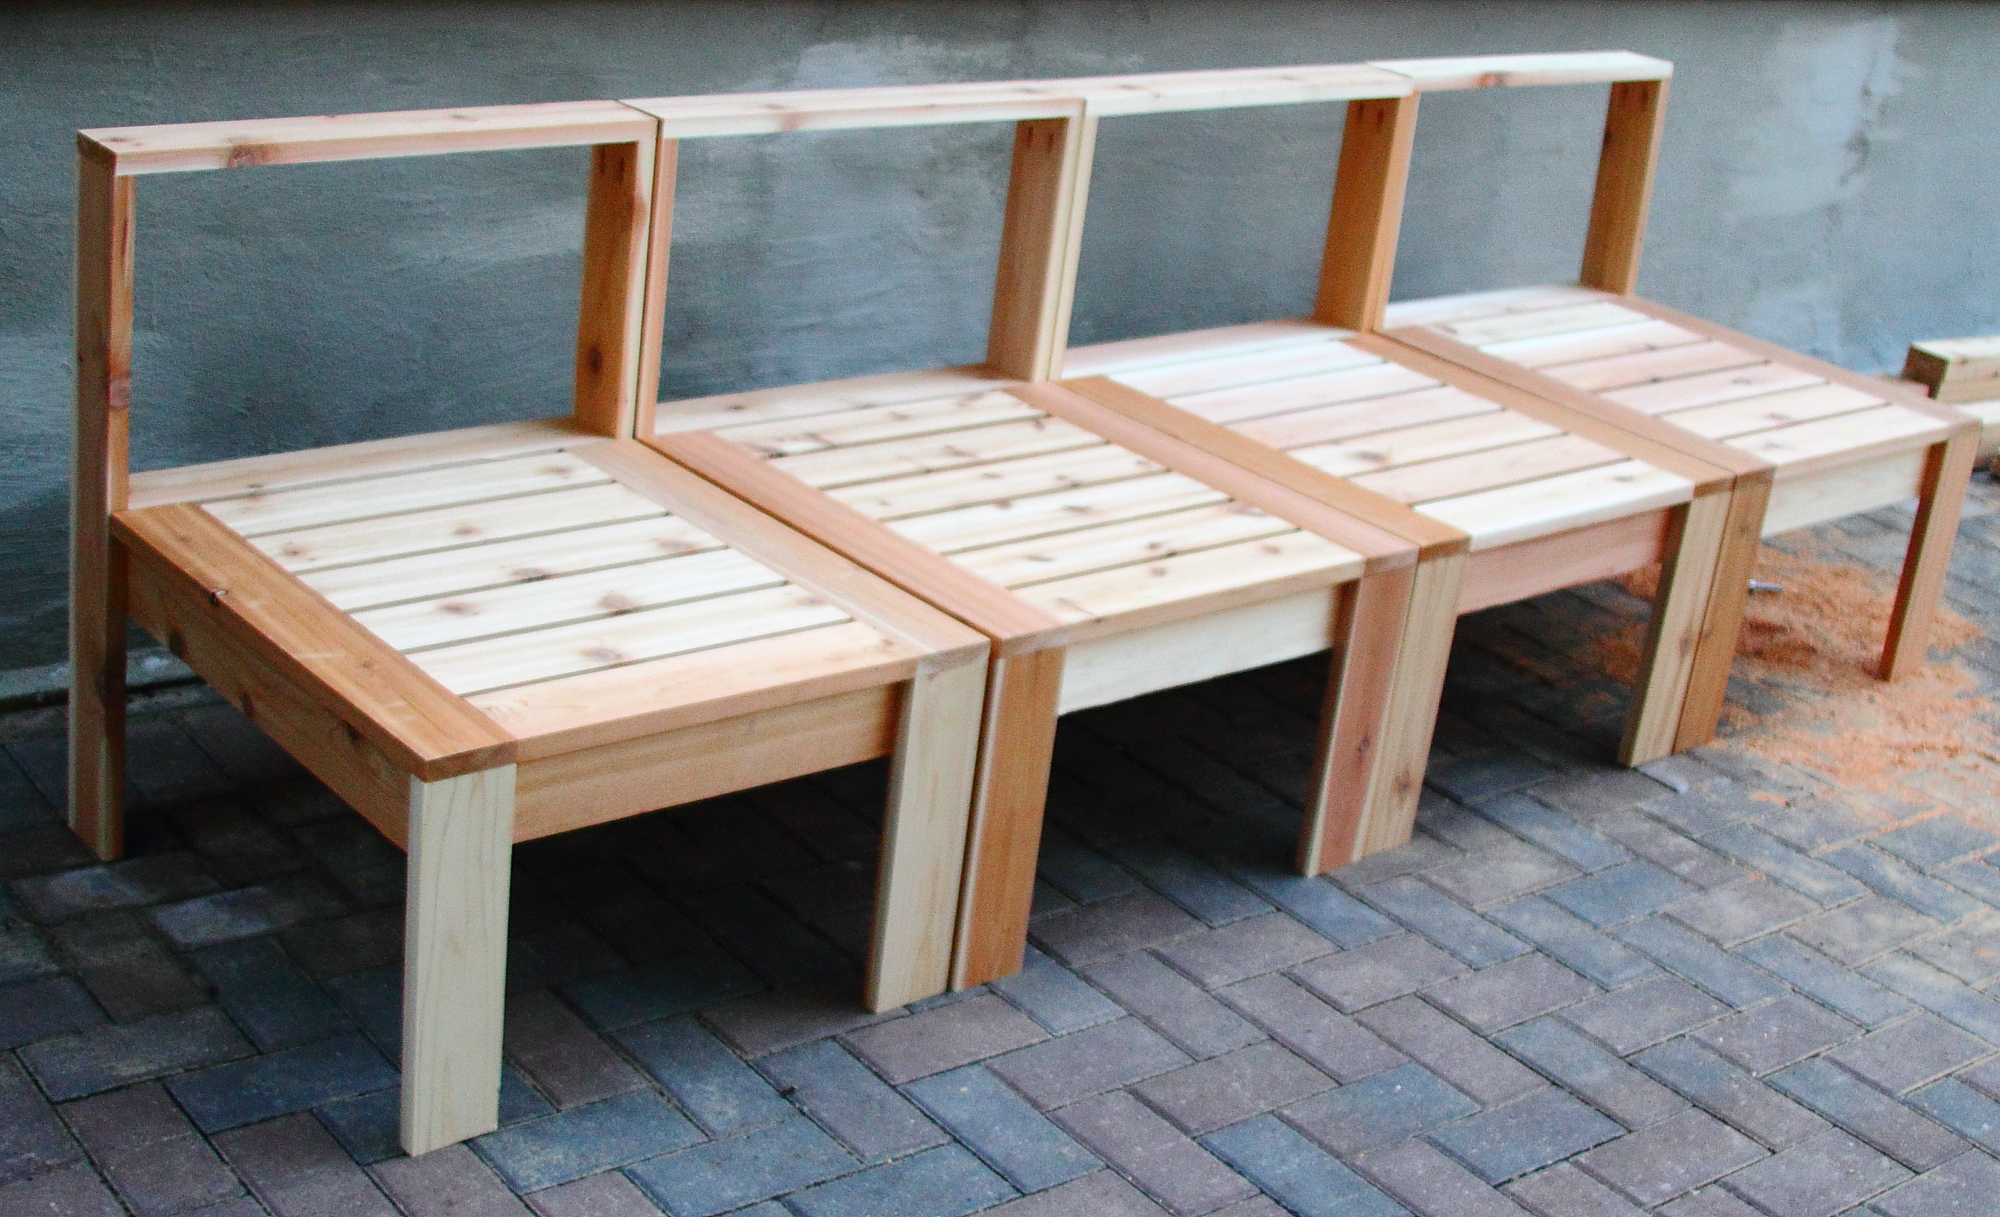 Diy patio furniture - Wood Patterns For Patio Furniture